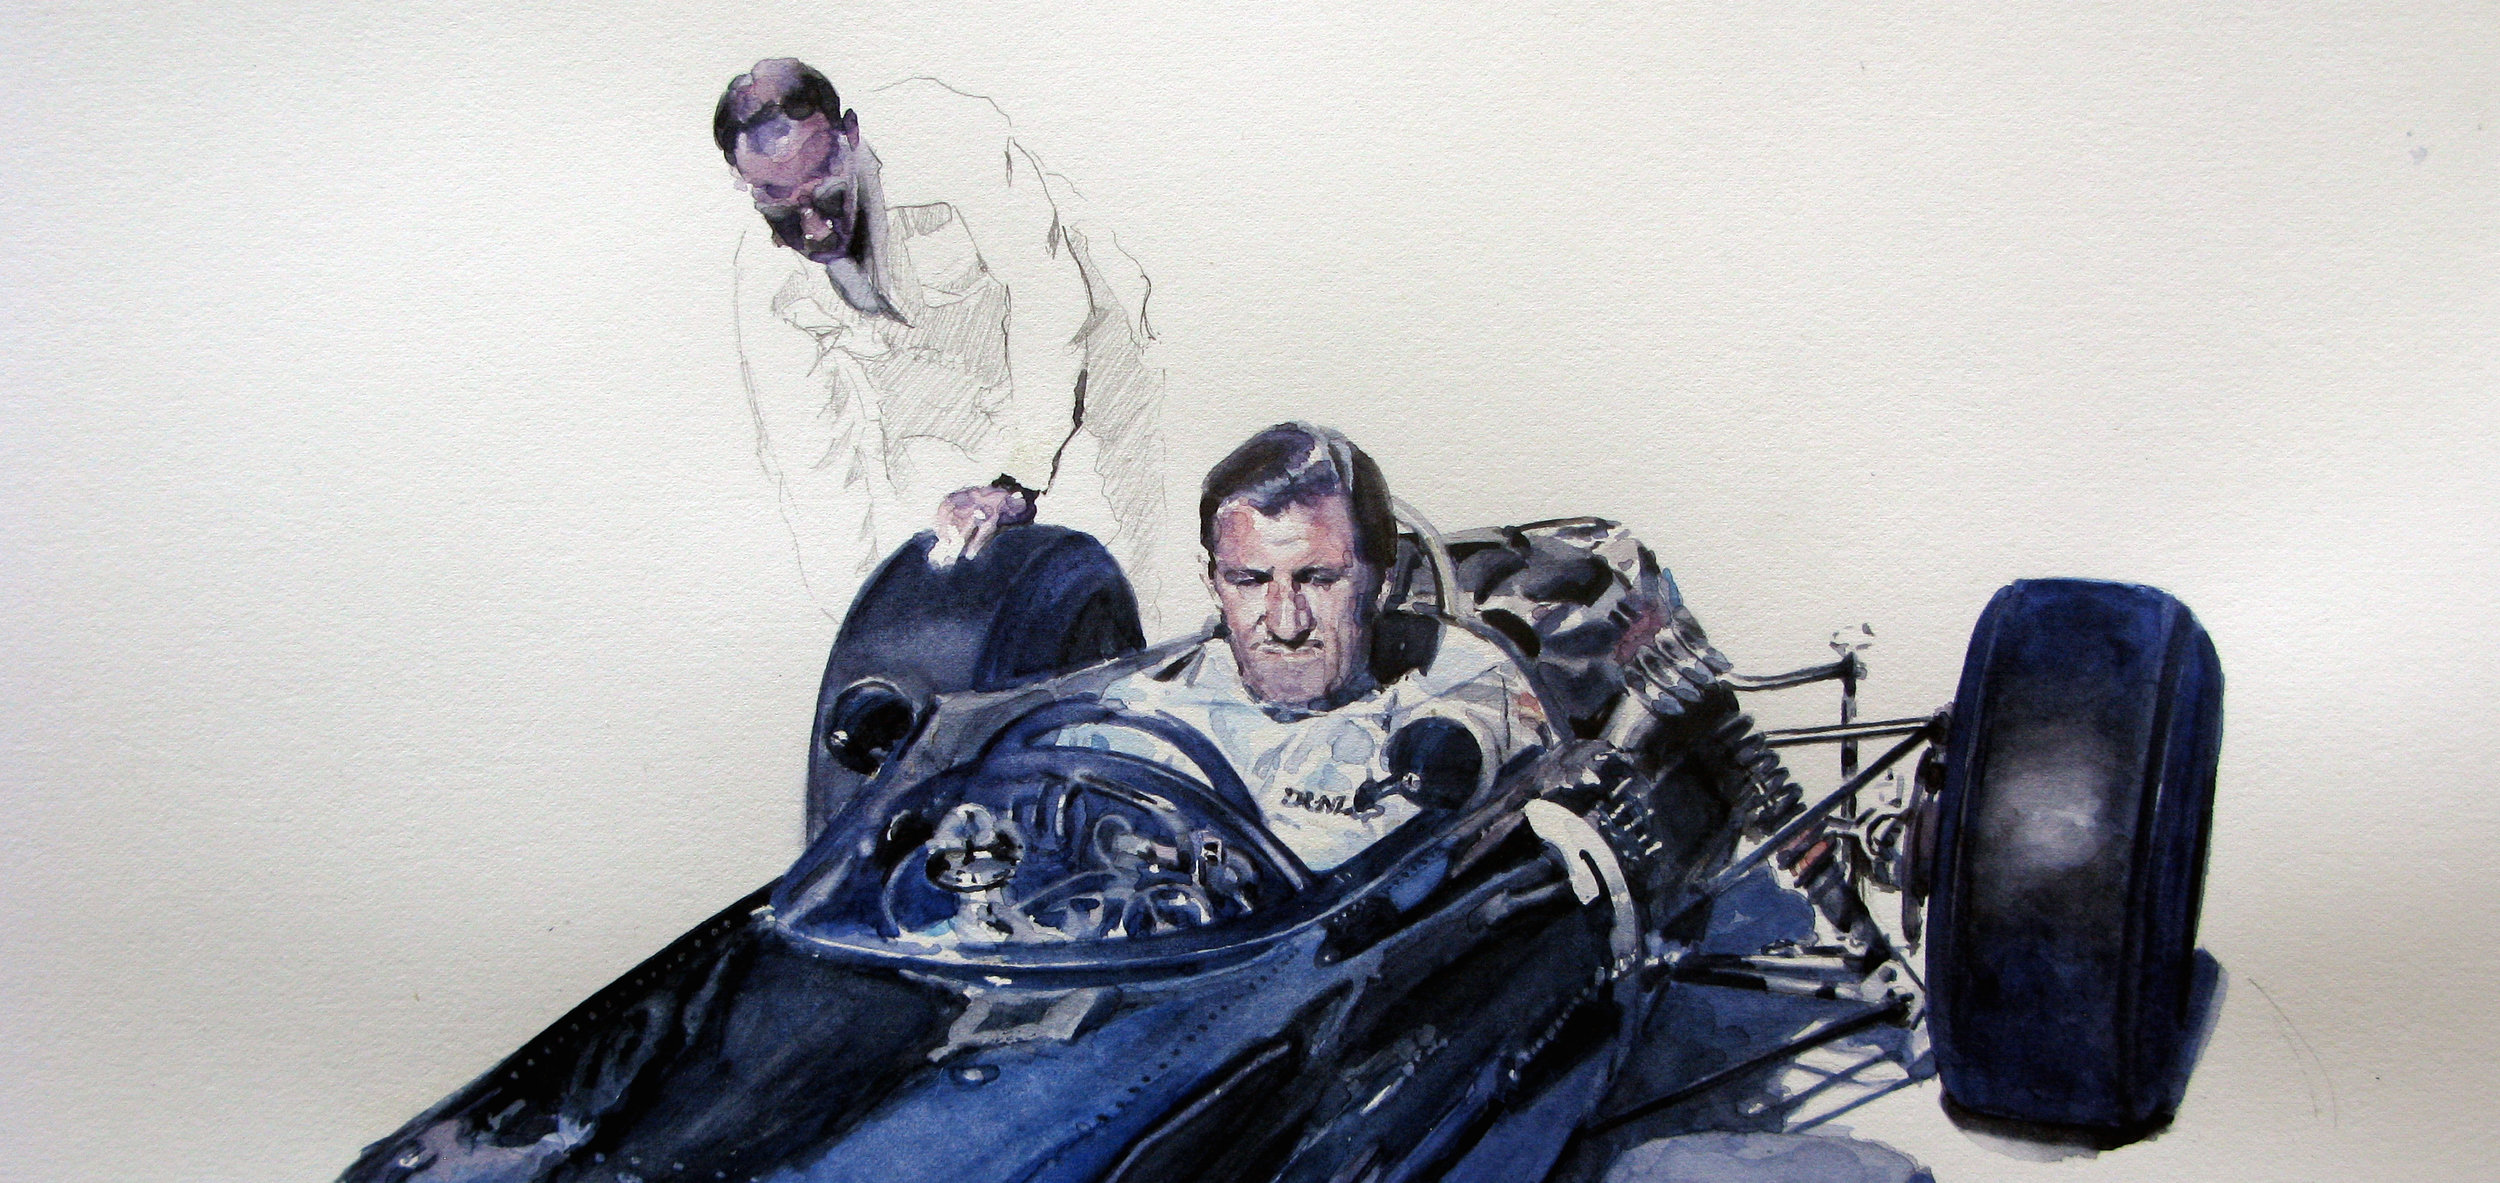 5. Graham Hill - Monaco 1965 BRM. watercolour 7 graphite on Paper, 2010 2.jpg